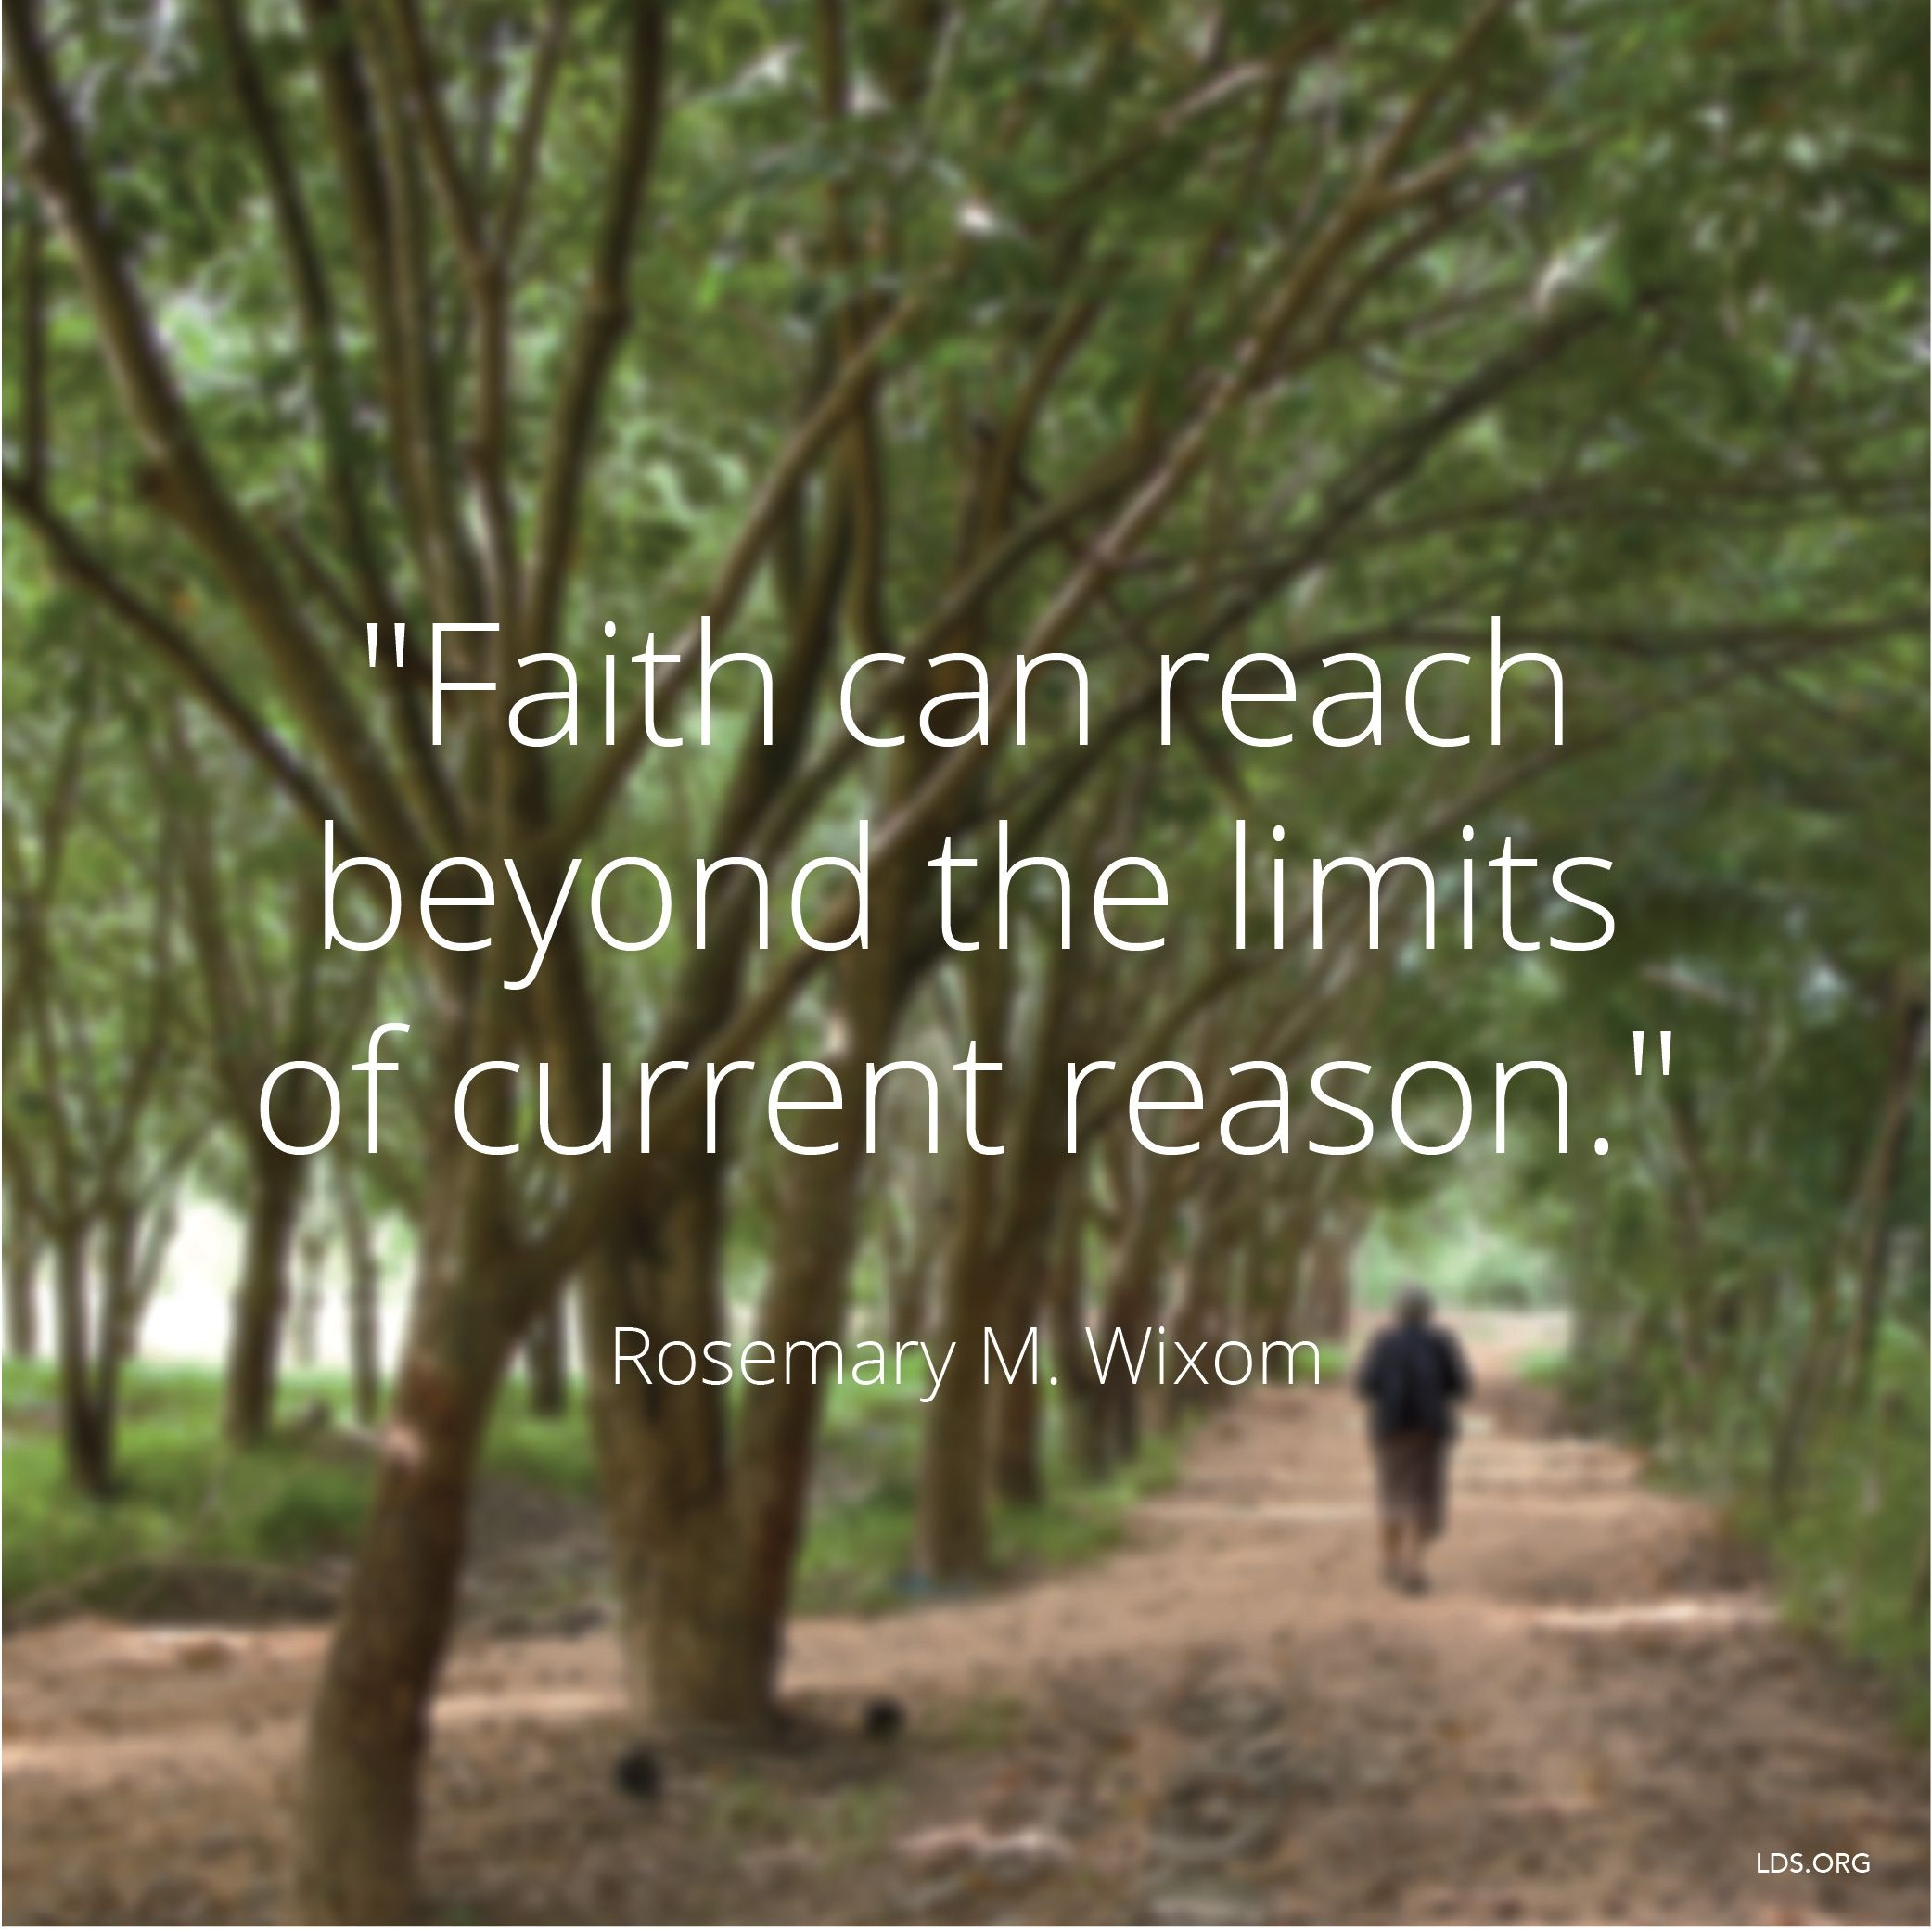 """""""Faith can reach beyond the limits of current reason.""""—Sister Rosemary M. Wixom, """"Returning to Faith"""""""